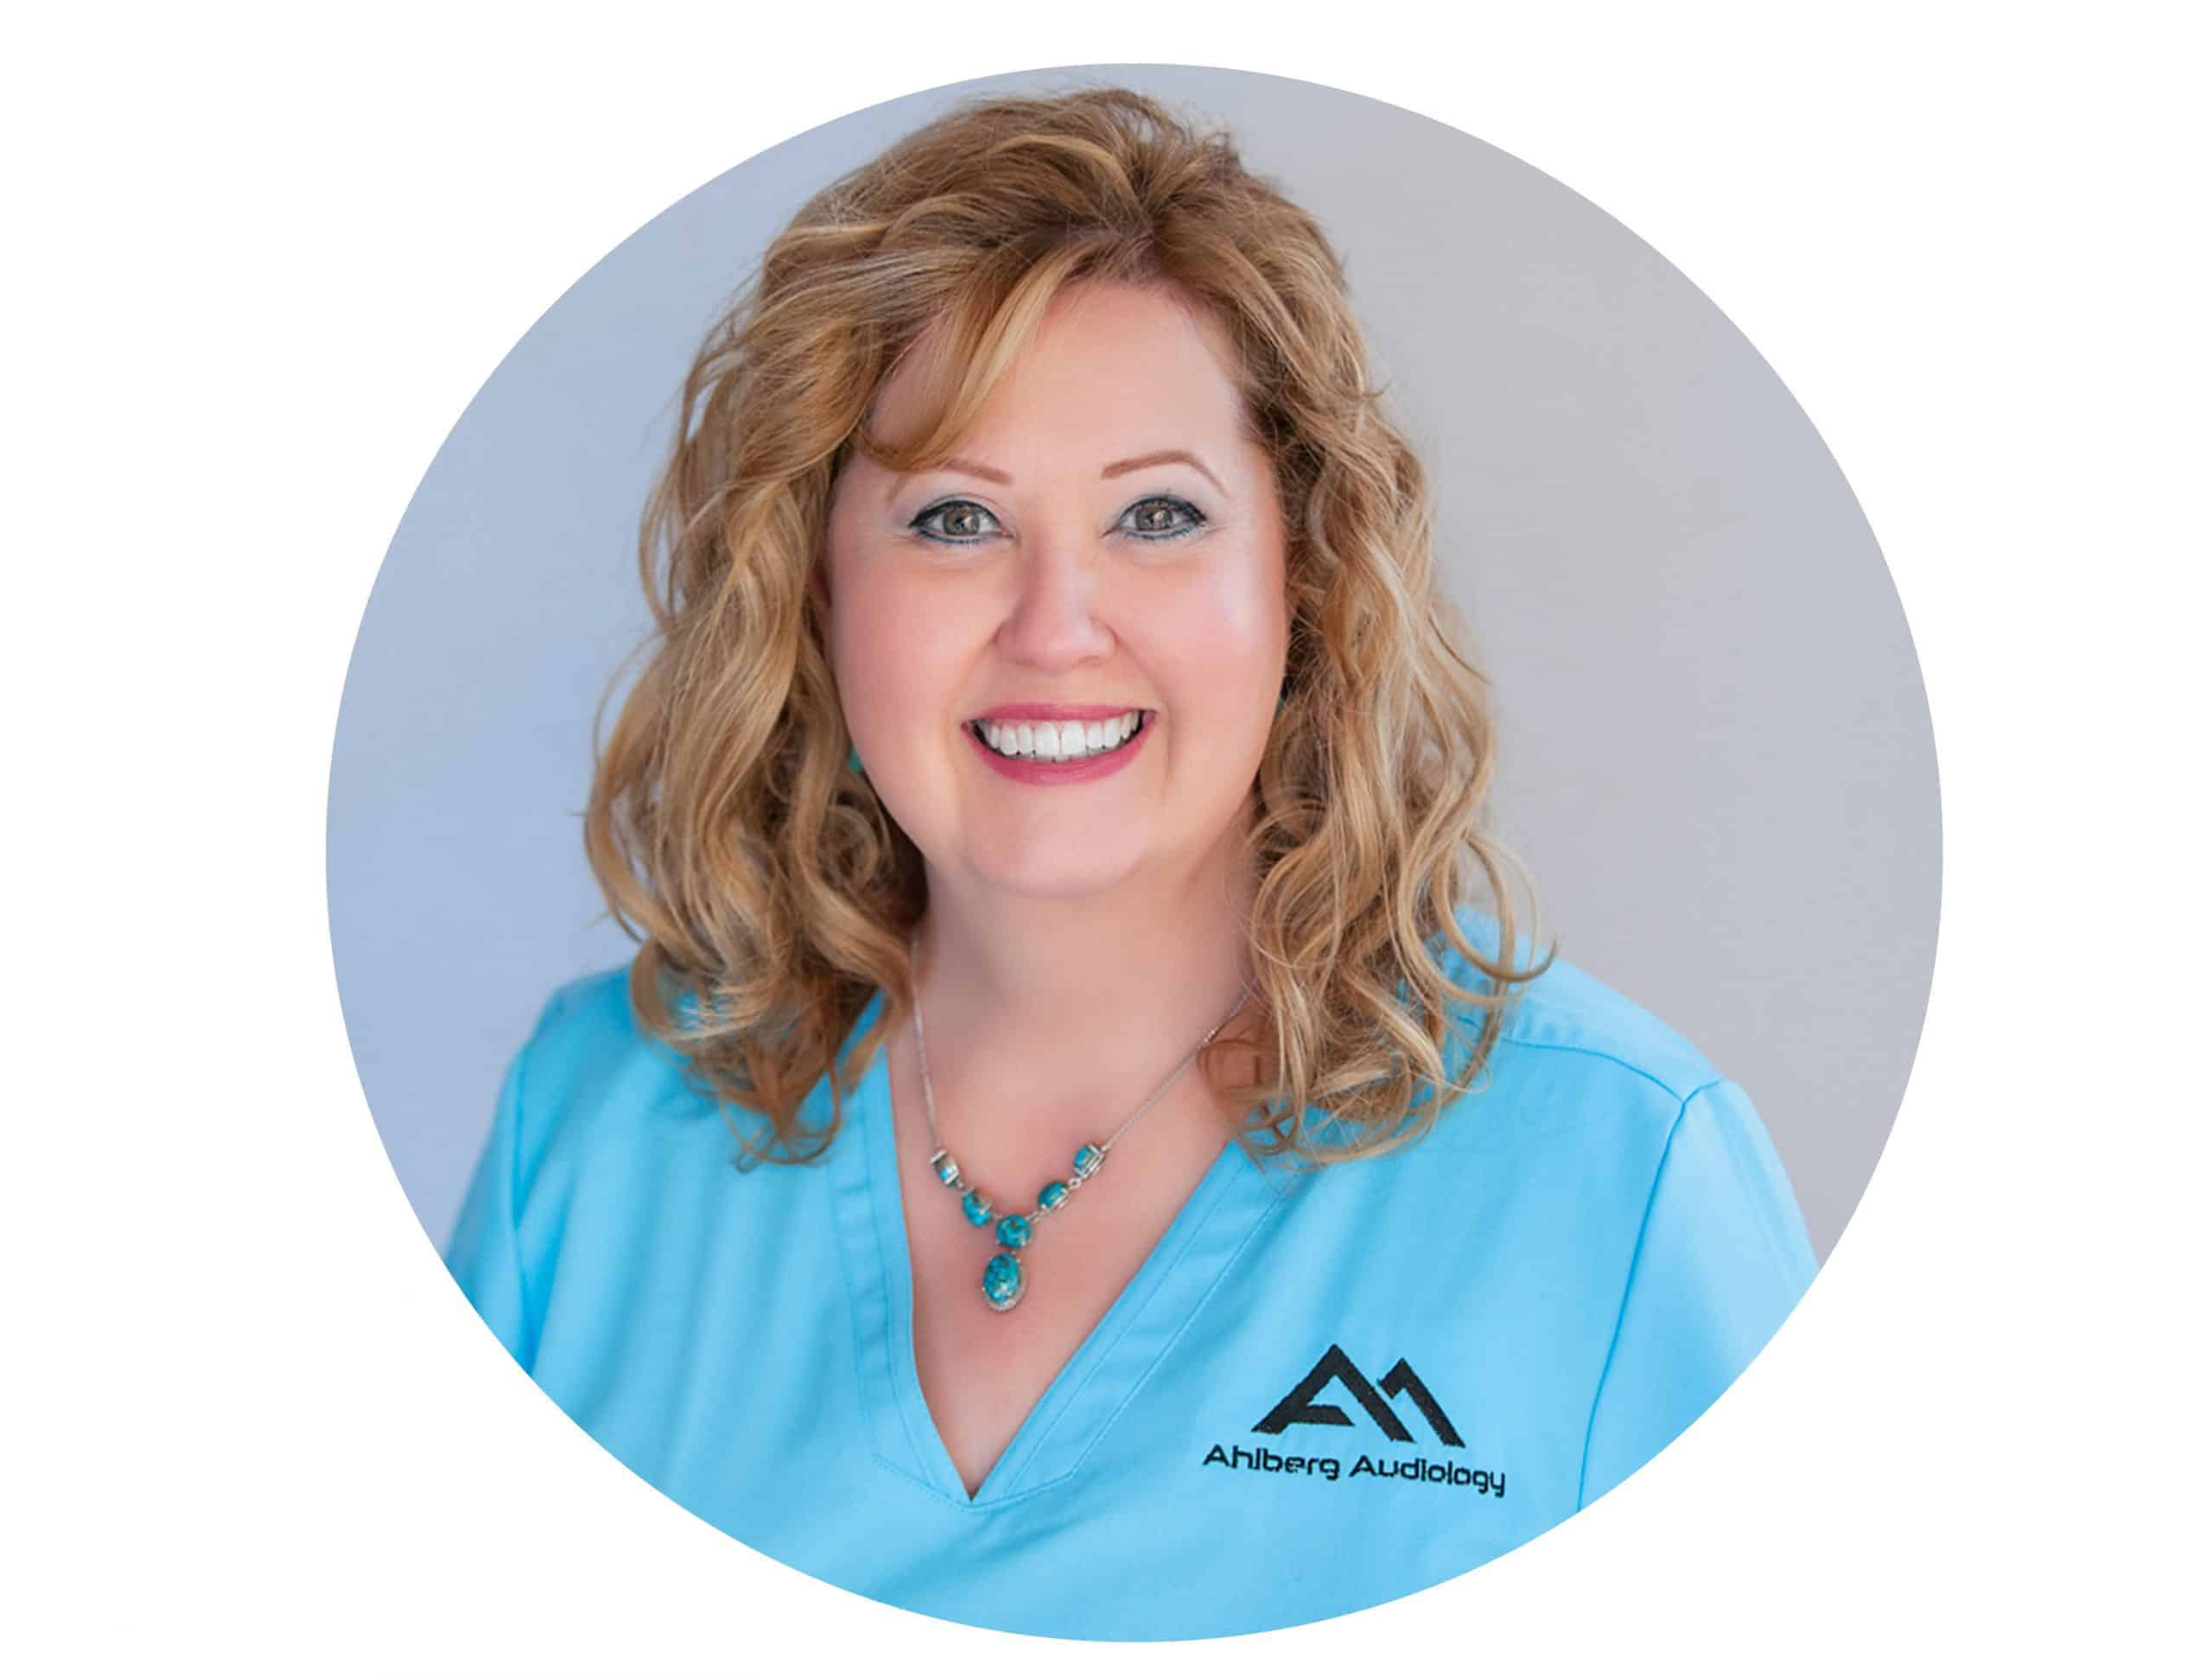 Beverly STevison, Ahlberg Audiology Practice Manager